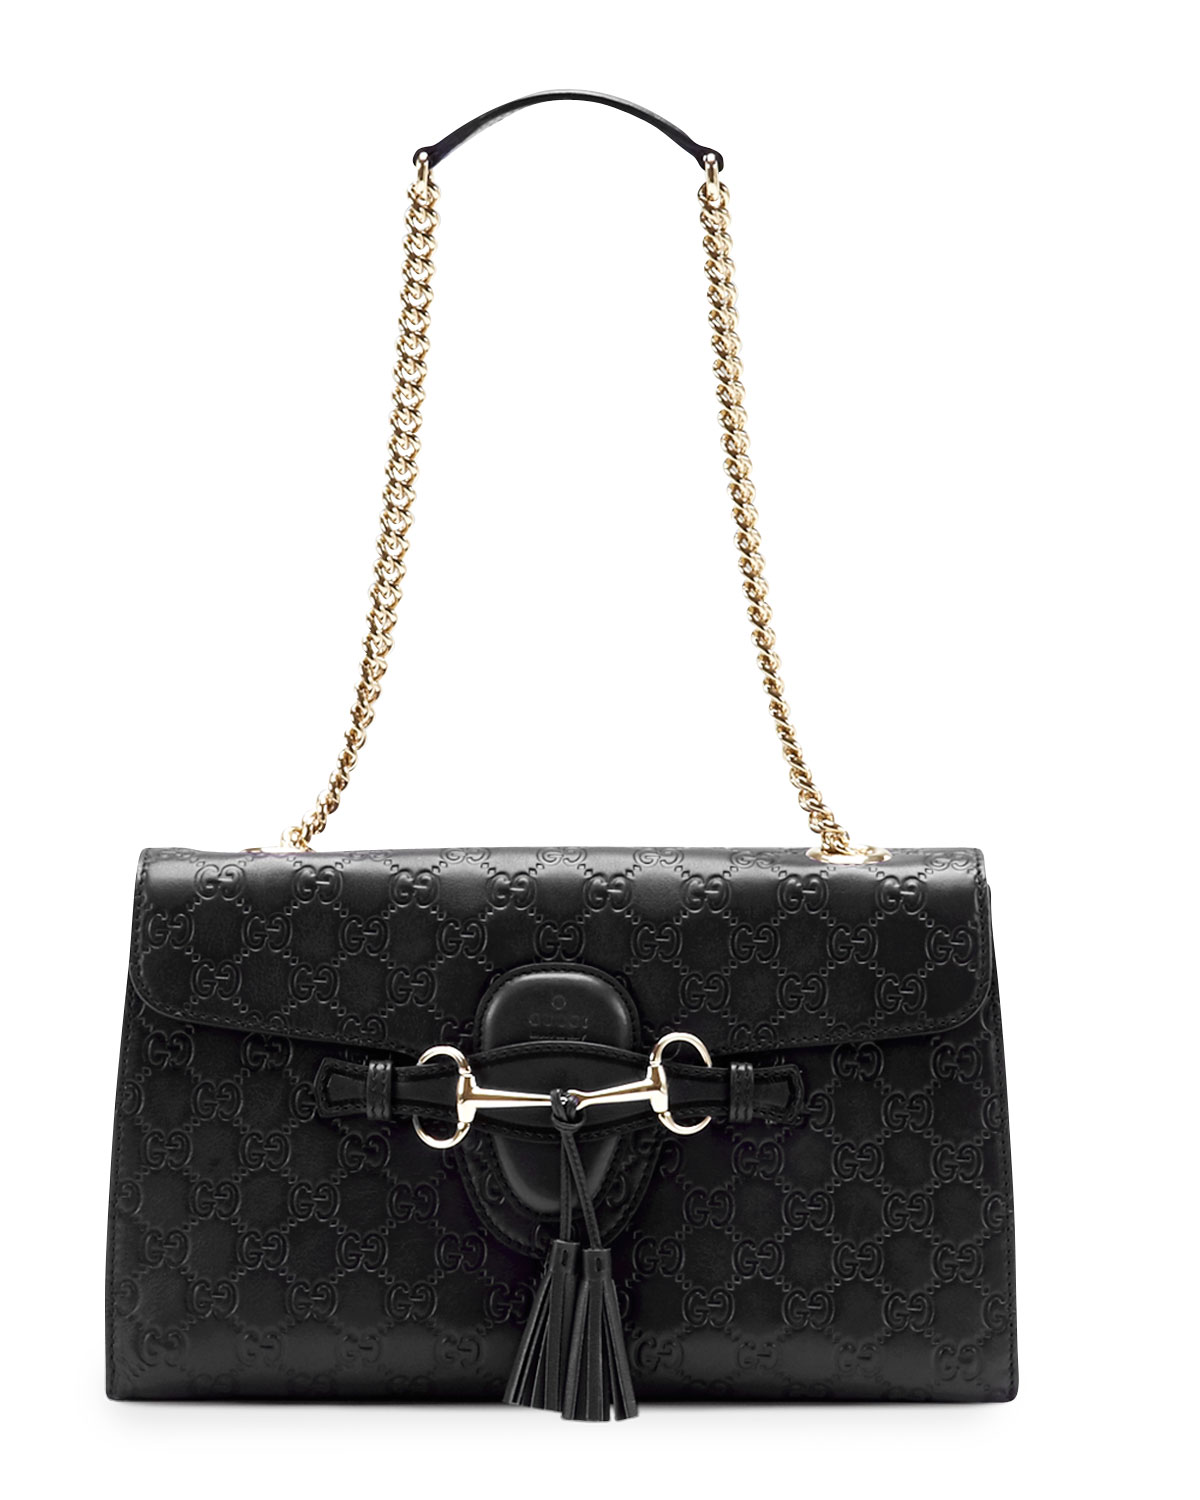 418f3ecc74b Gucci Emily Guccissima Leather Chain Shoulder Bag